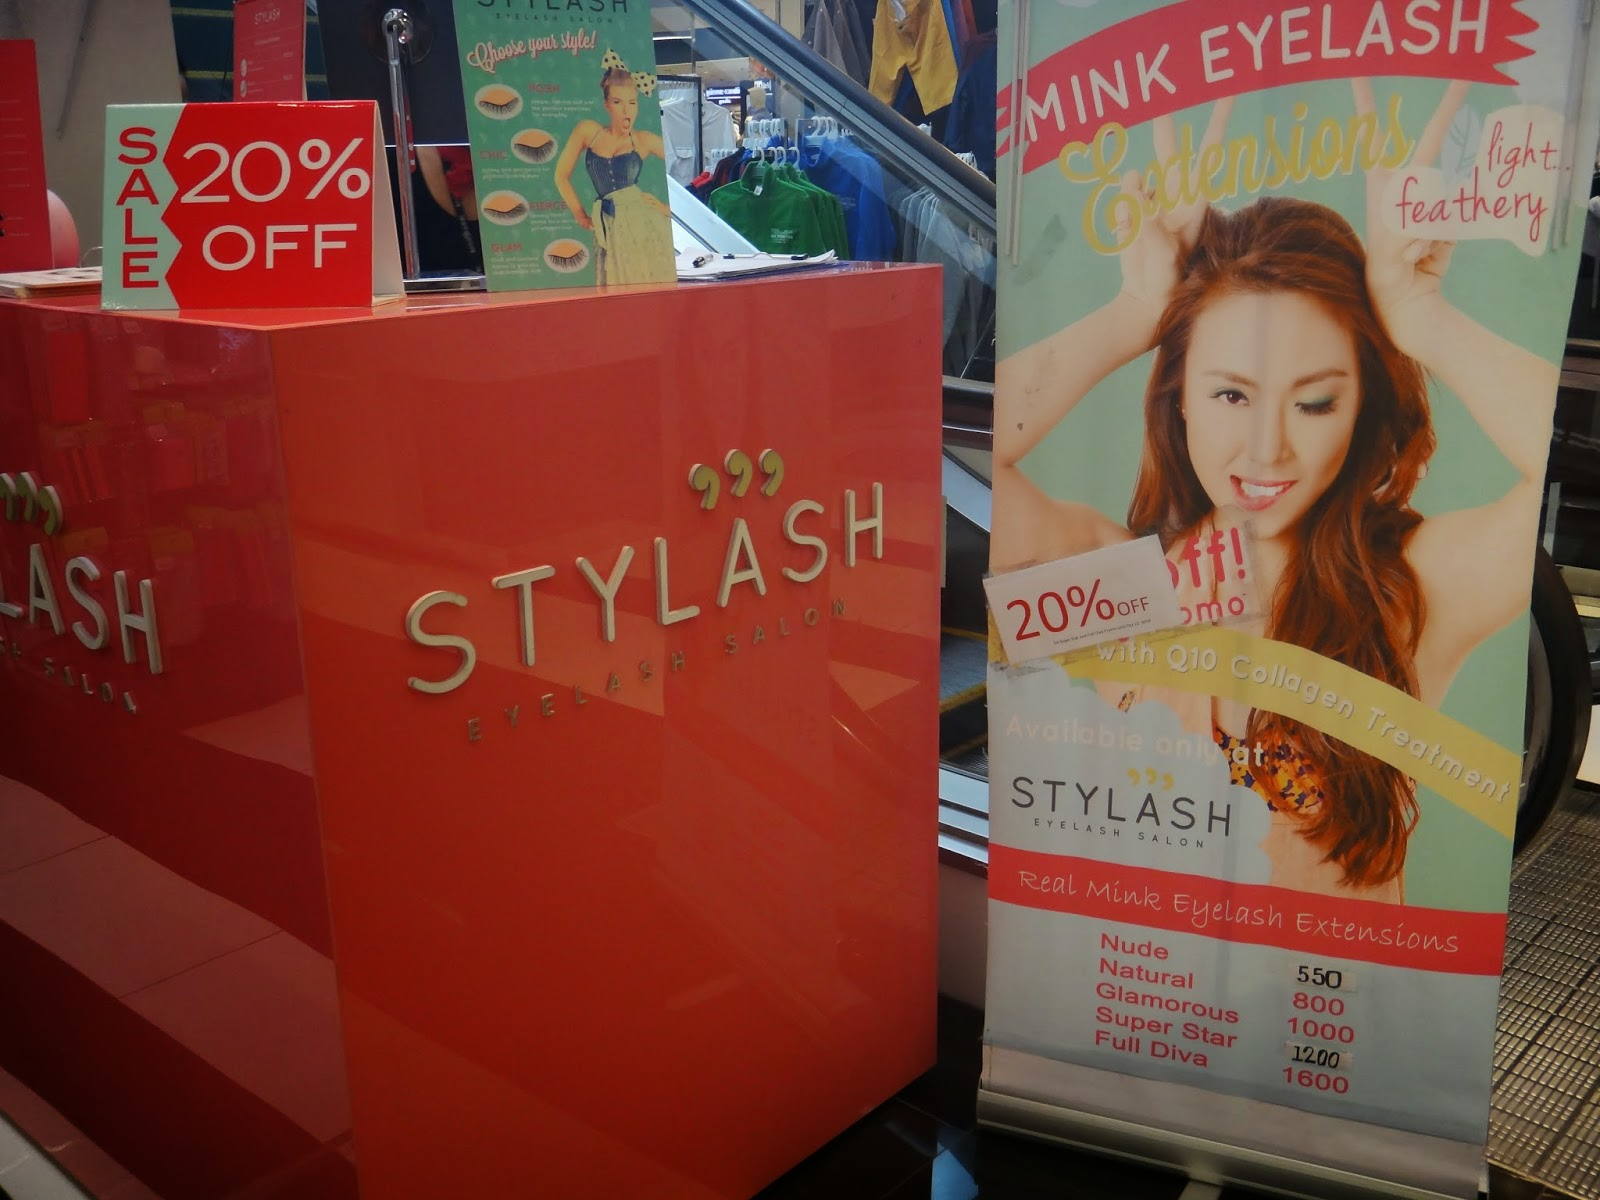 4e4870f46a4 STYLASH is located inside Landmark Makati, ground floor, right next to the  escalator. There was a small area underneath the escalator that they turned  into ...